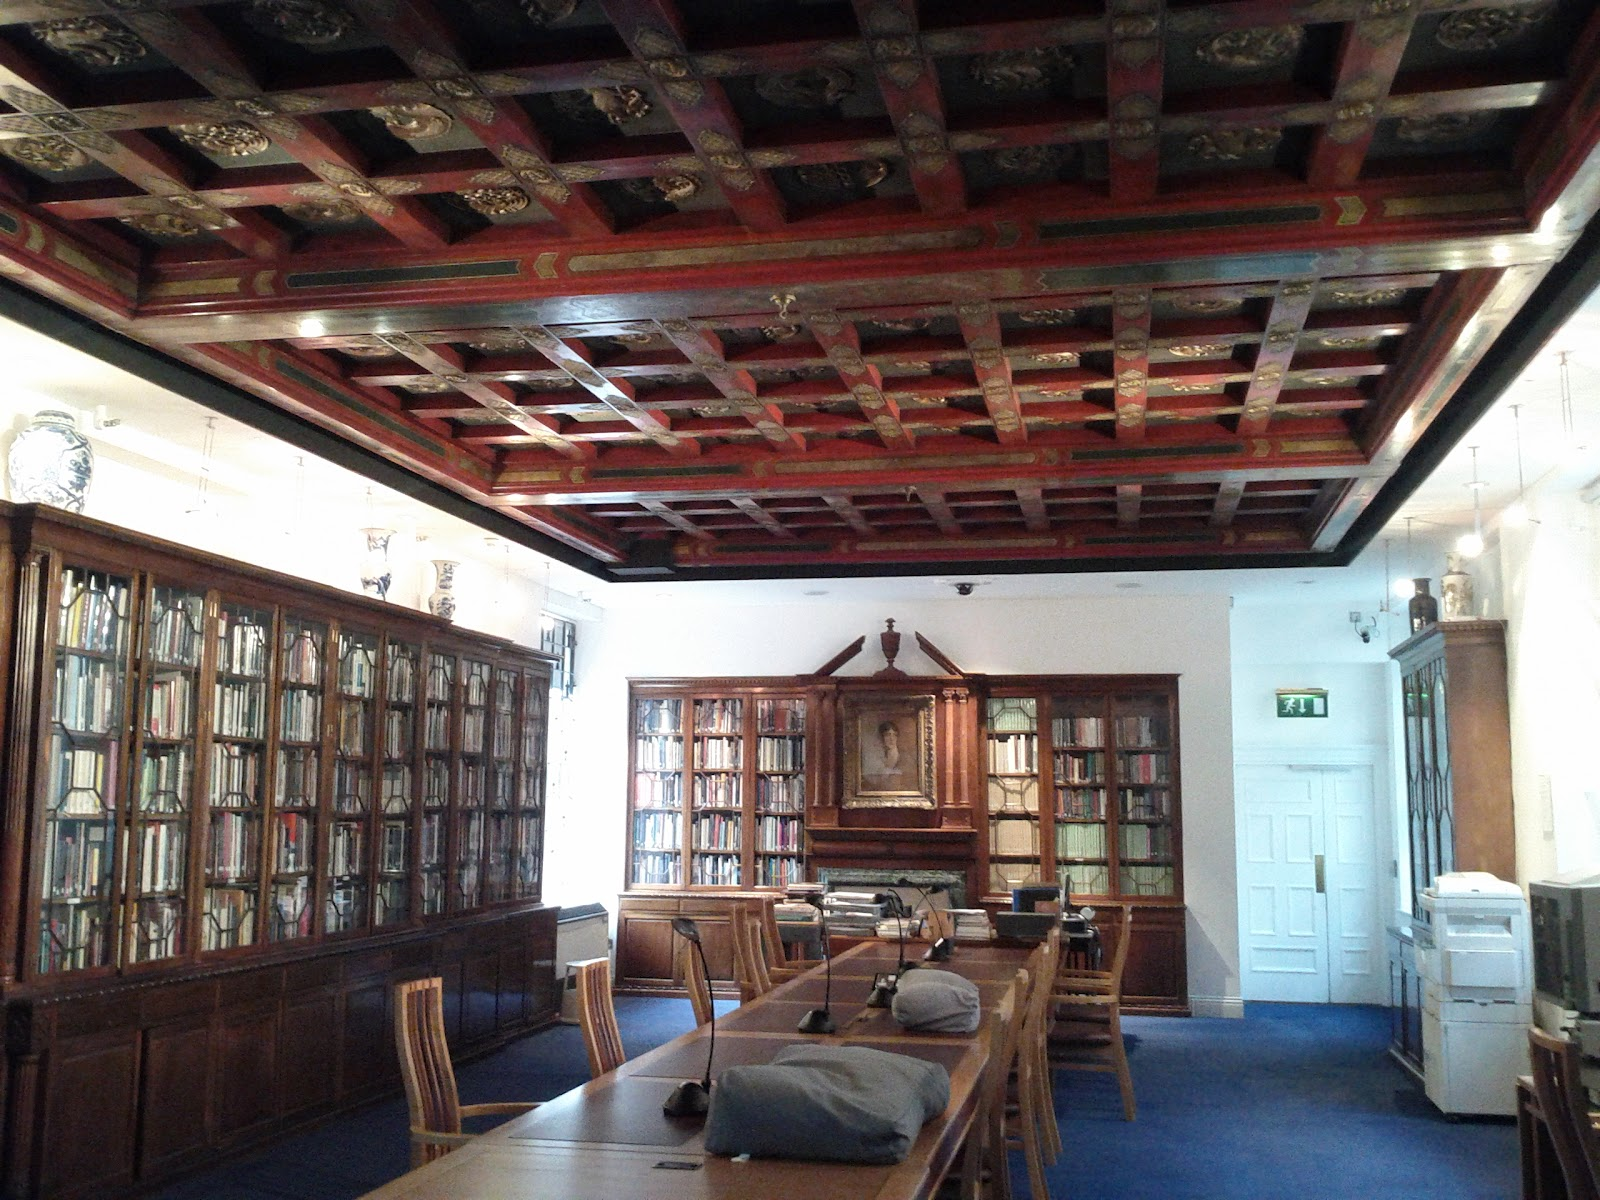 Chester Beatty Library Dublin, A treat at the Chester Beatty Library in Dublin | Wellcome Library